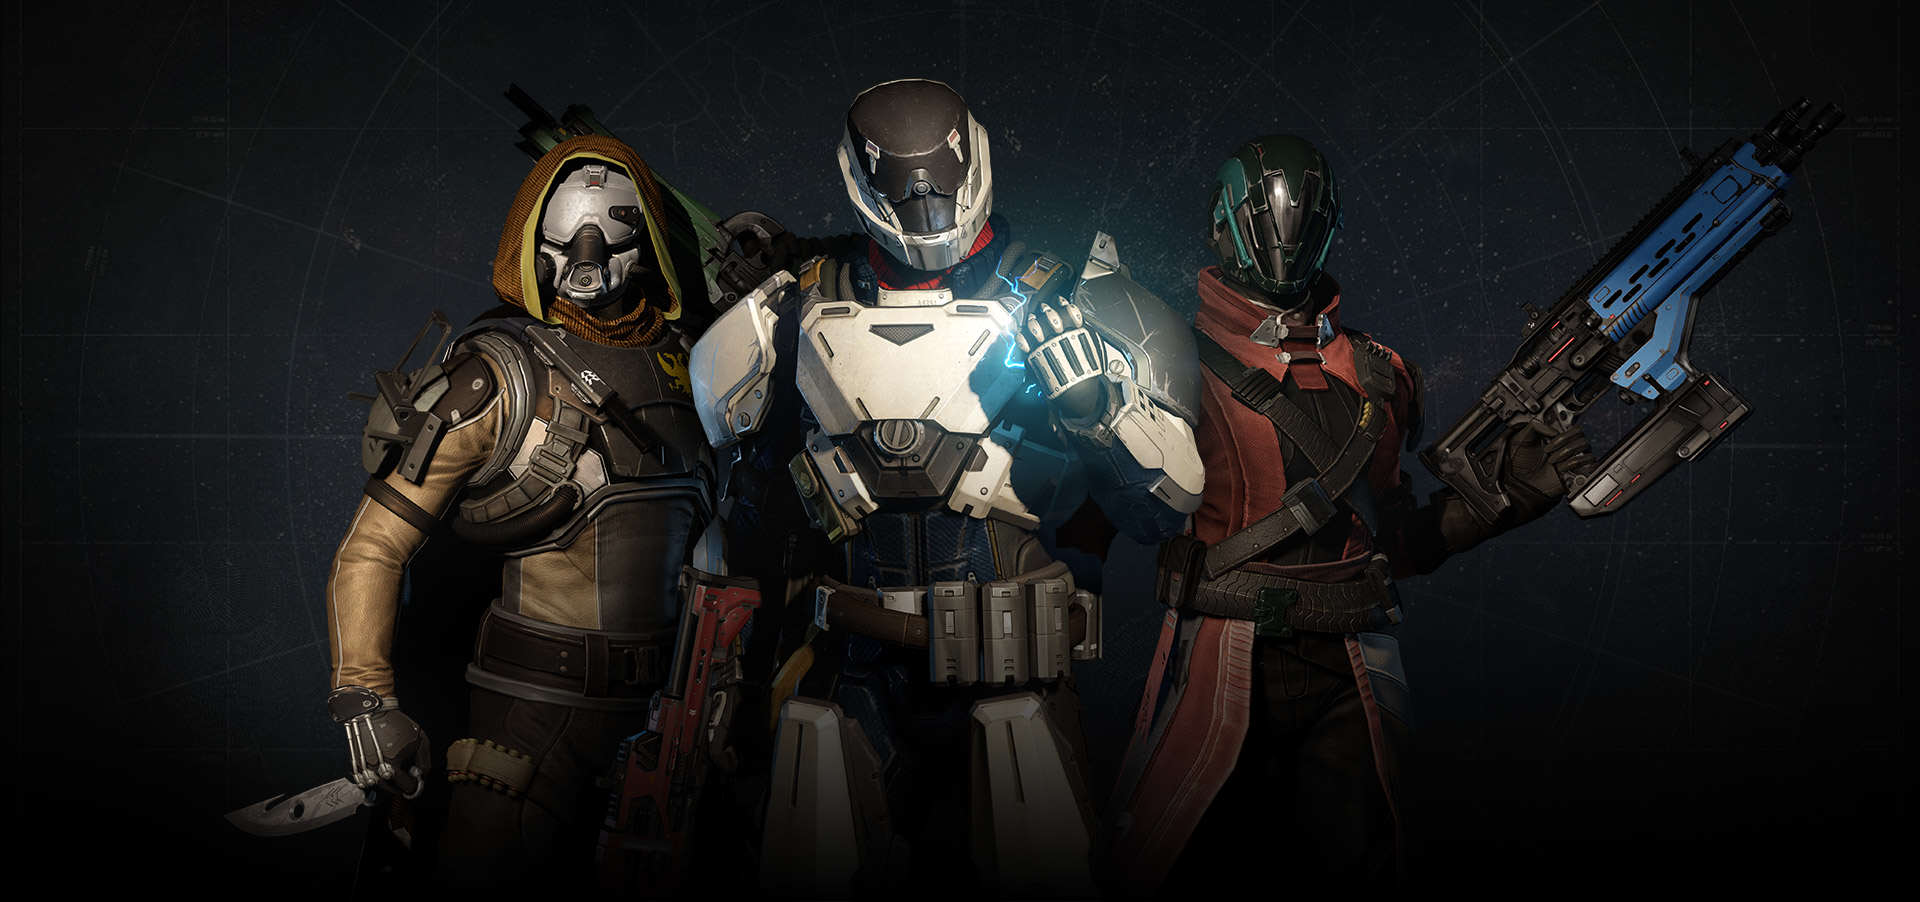 This Destiny Clan Banded Together To Help A Family In Need 2654454 14410226238 8cf8662222 o